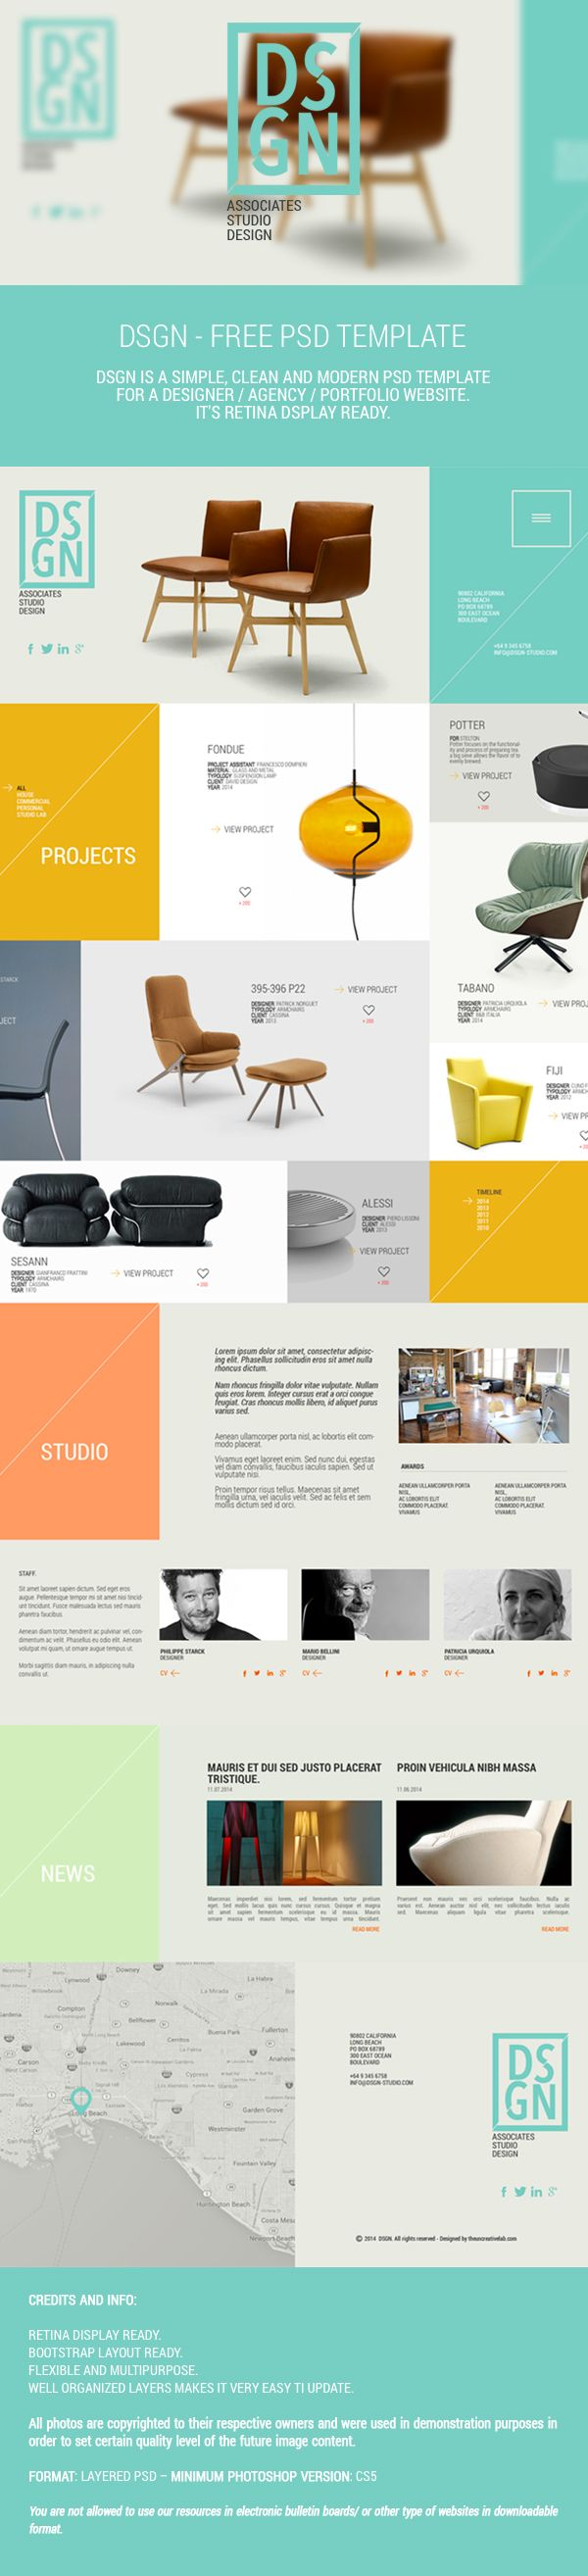 Great color palette DSGN - Free .PSD Template